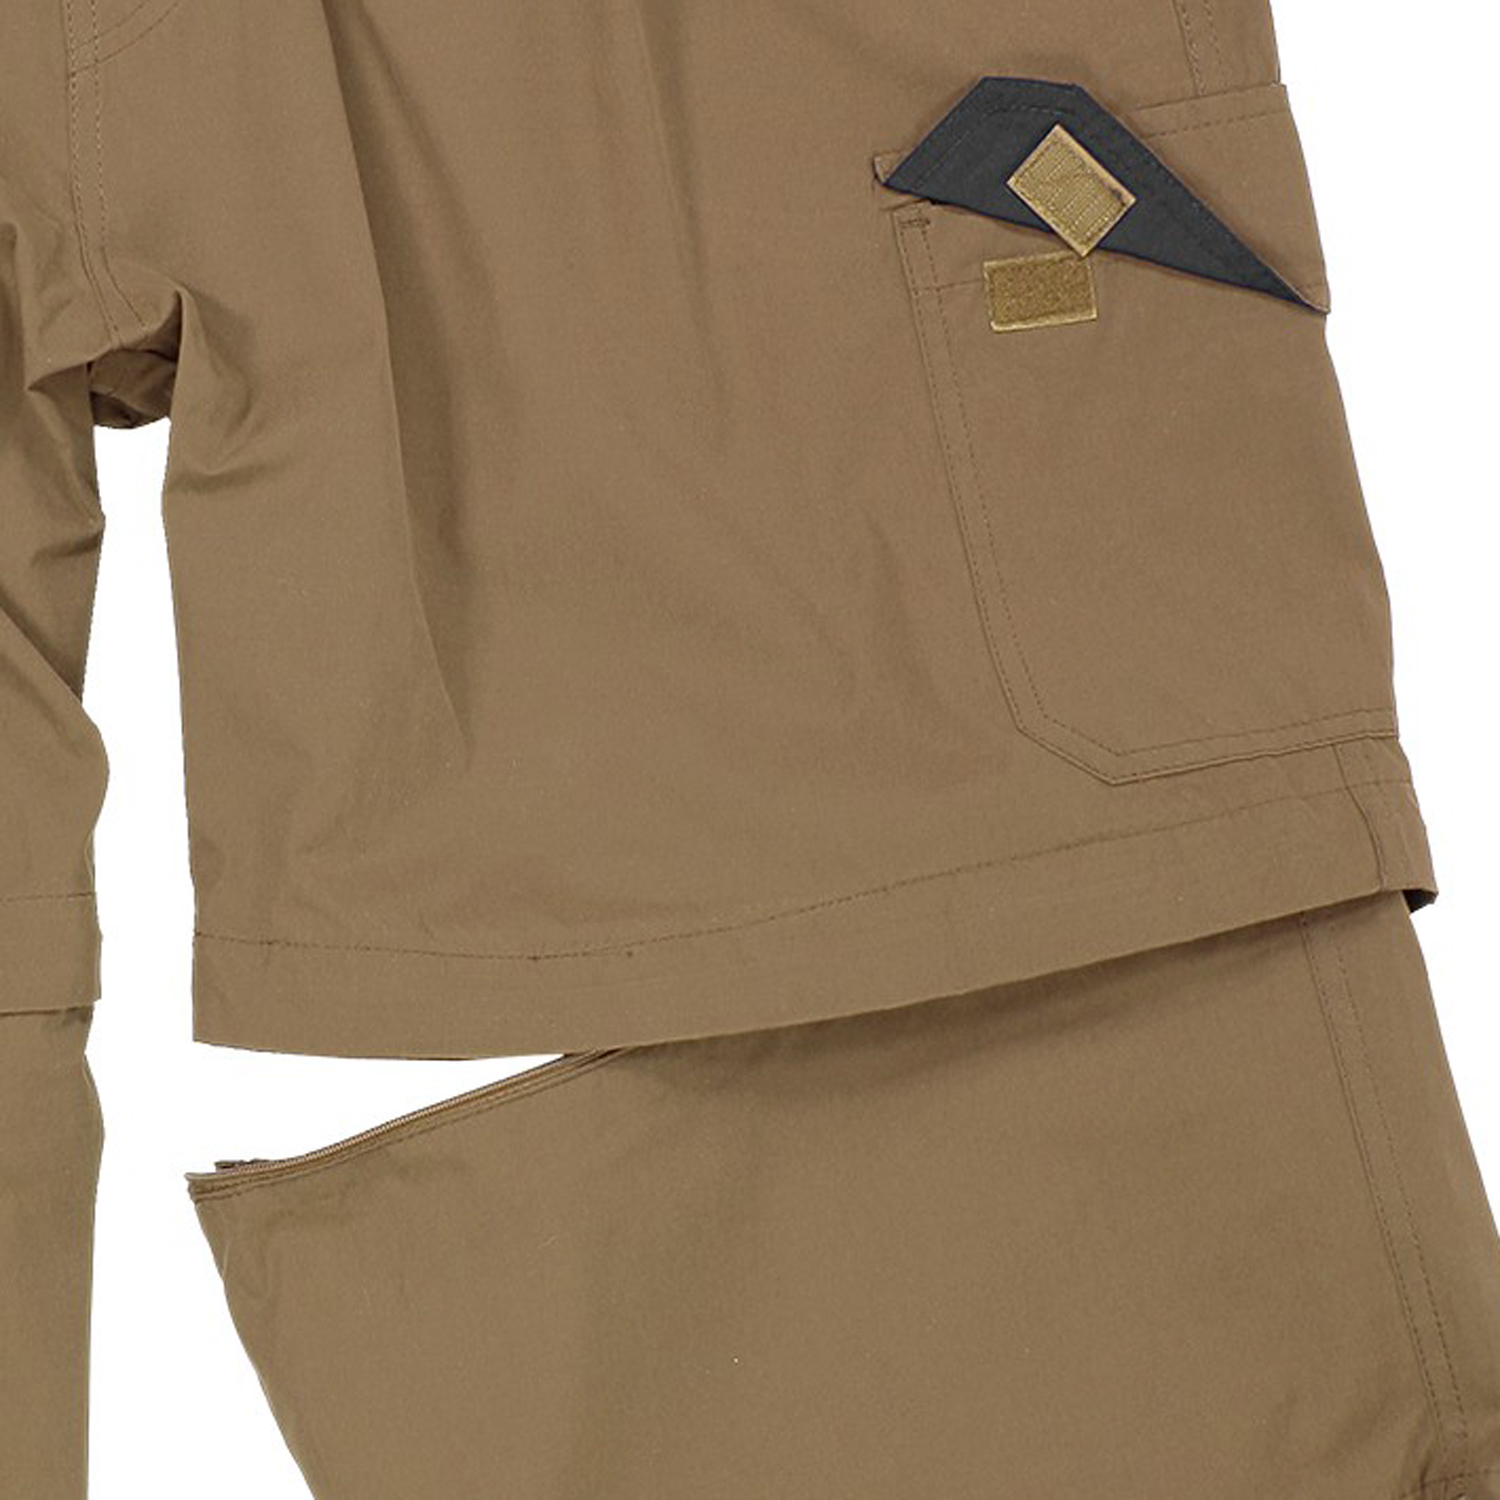 Detail Image to Zip-off-Cargo-Bermuda in khaki by Abraxas in oversizes up to 10XL